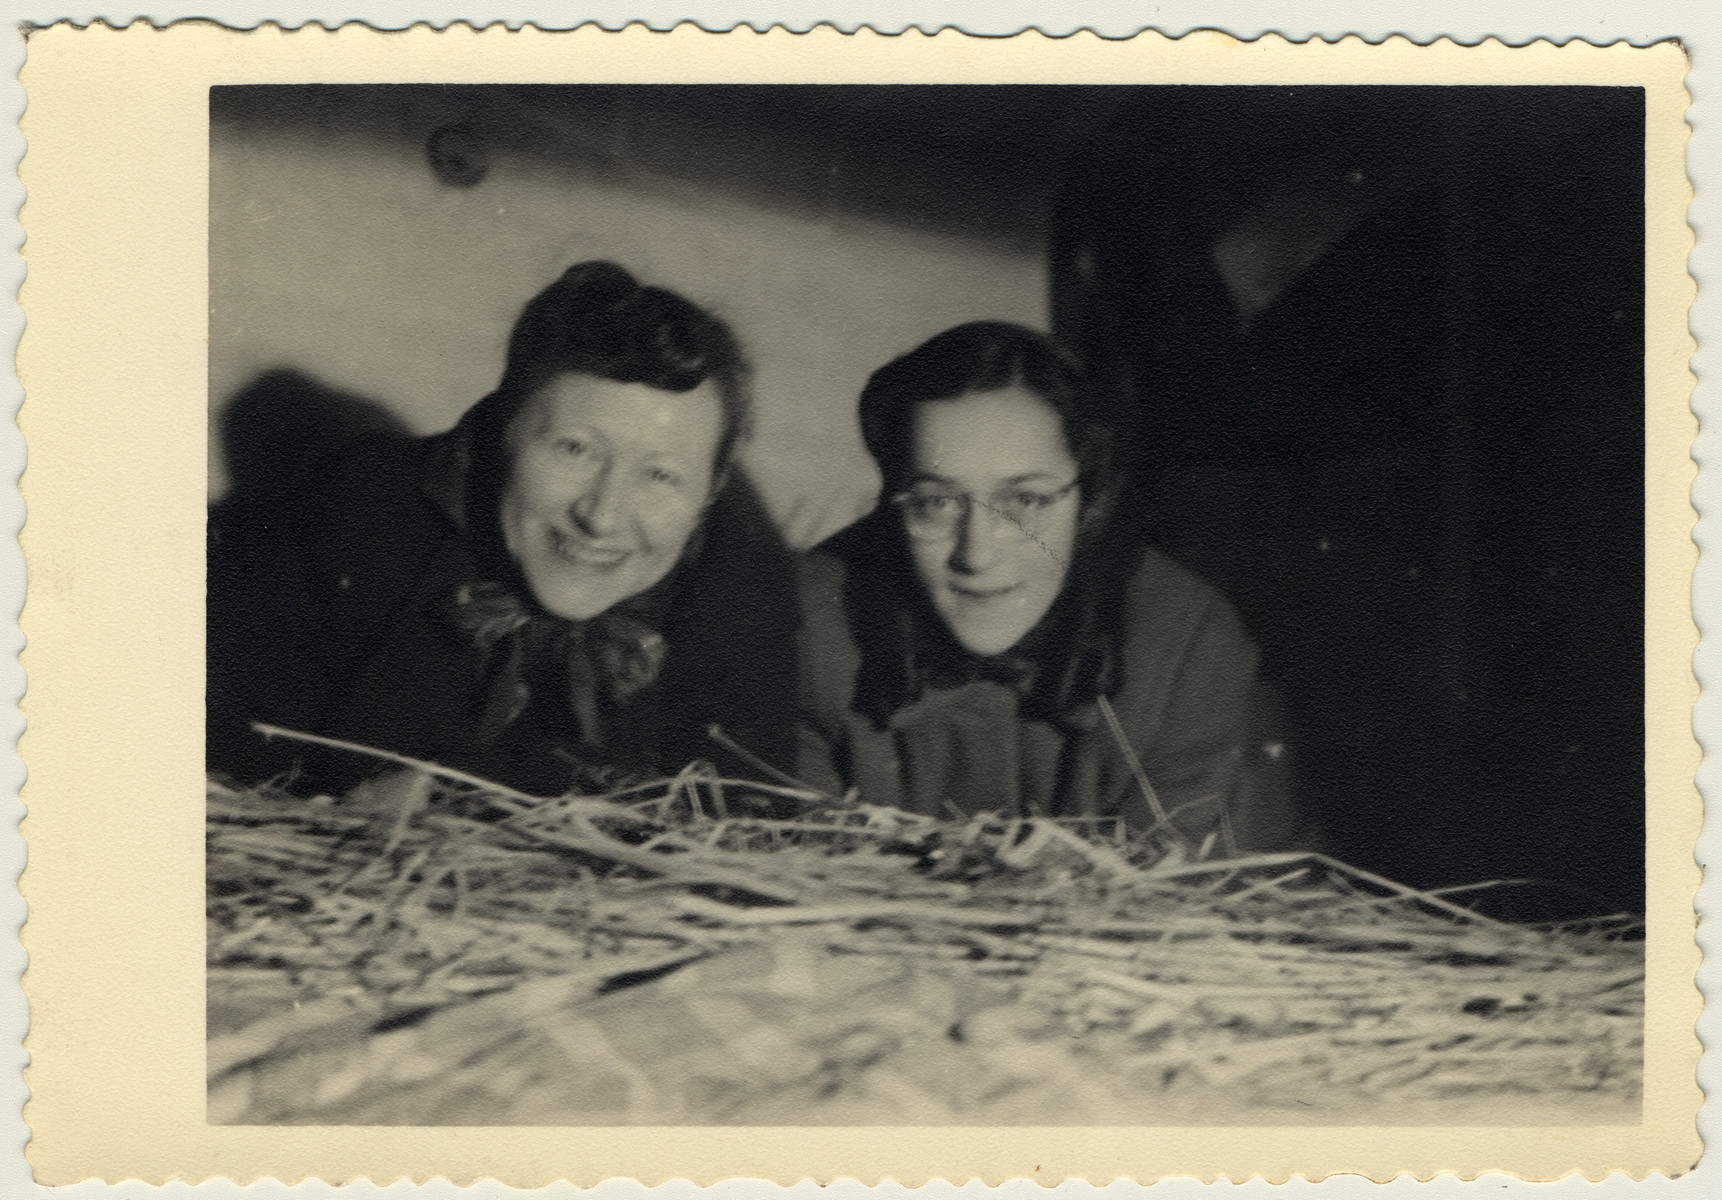 Suse and Kate Grunbaum lie in an attic storeroom at the home of Bernard and Mina Hartemink in Sinderen, the Netherlands, where she was hidden during the war.